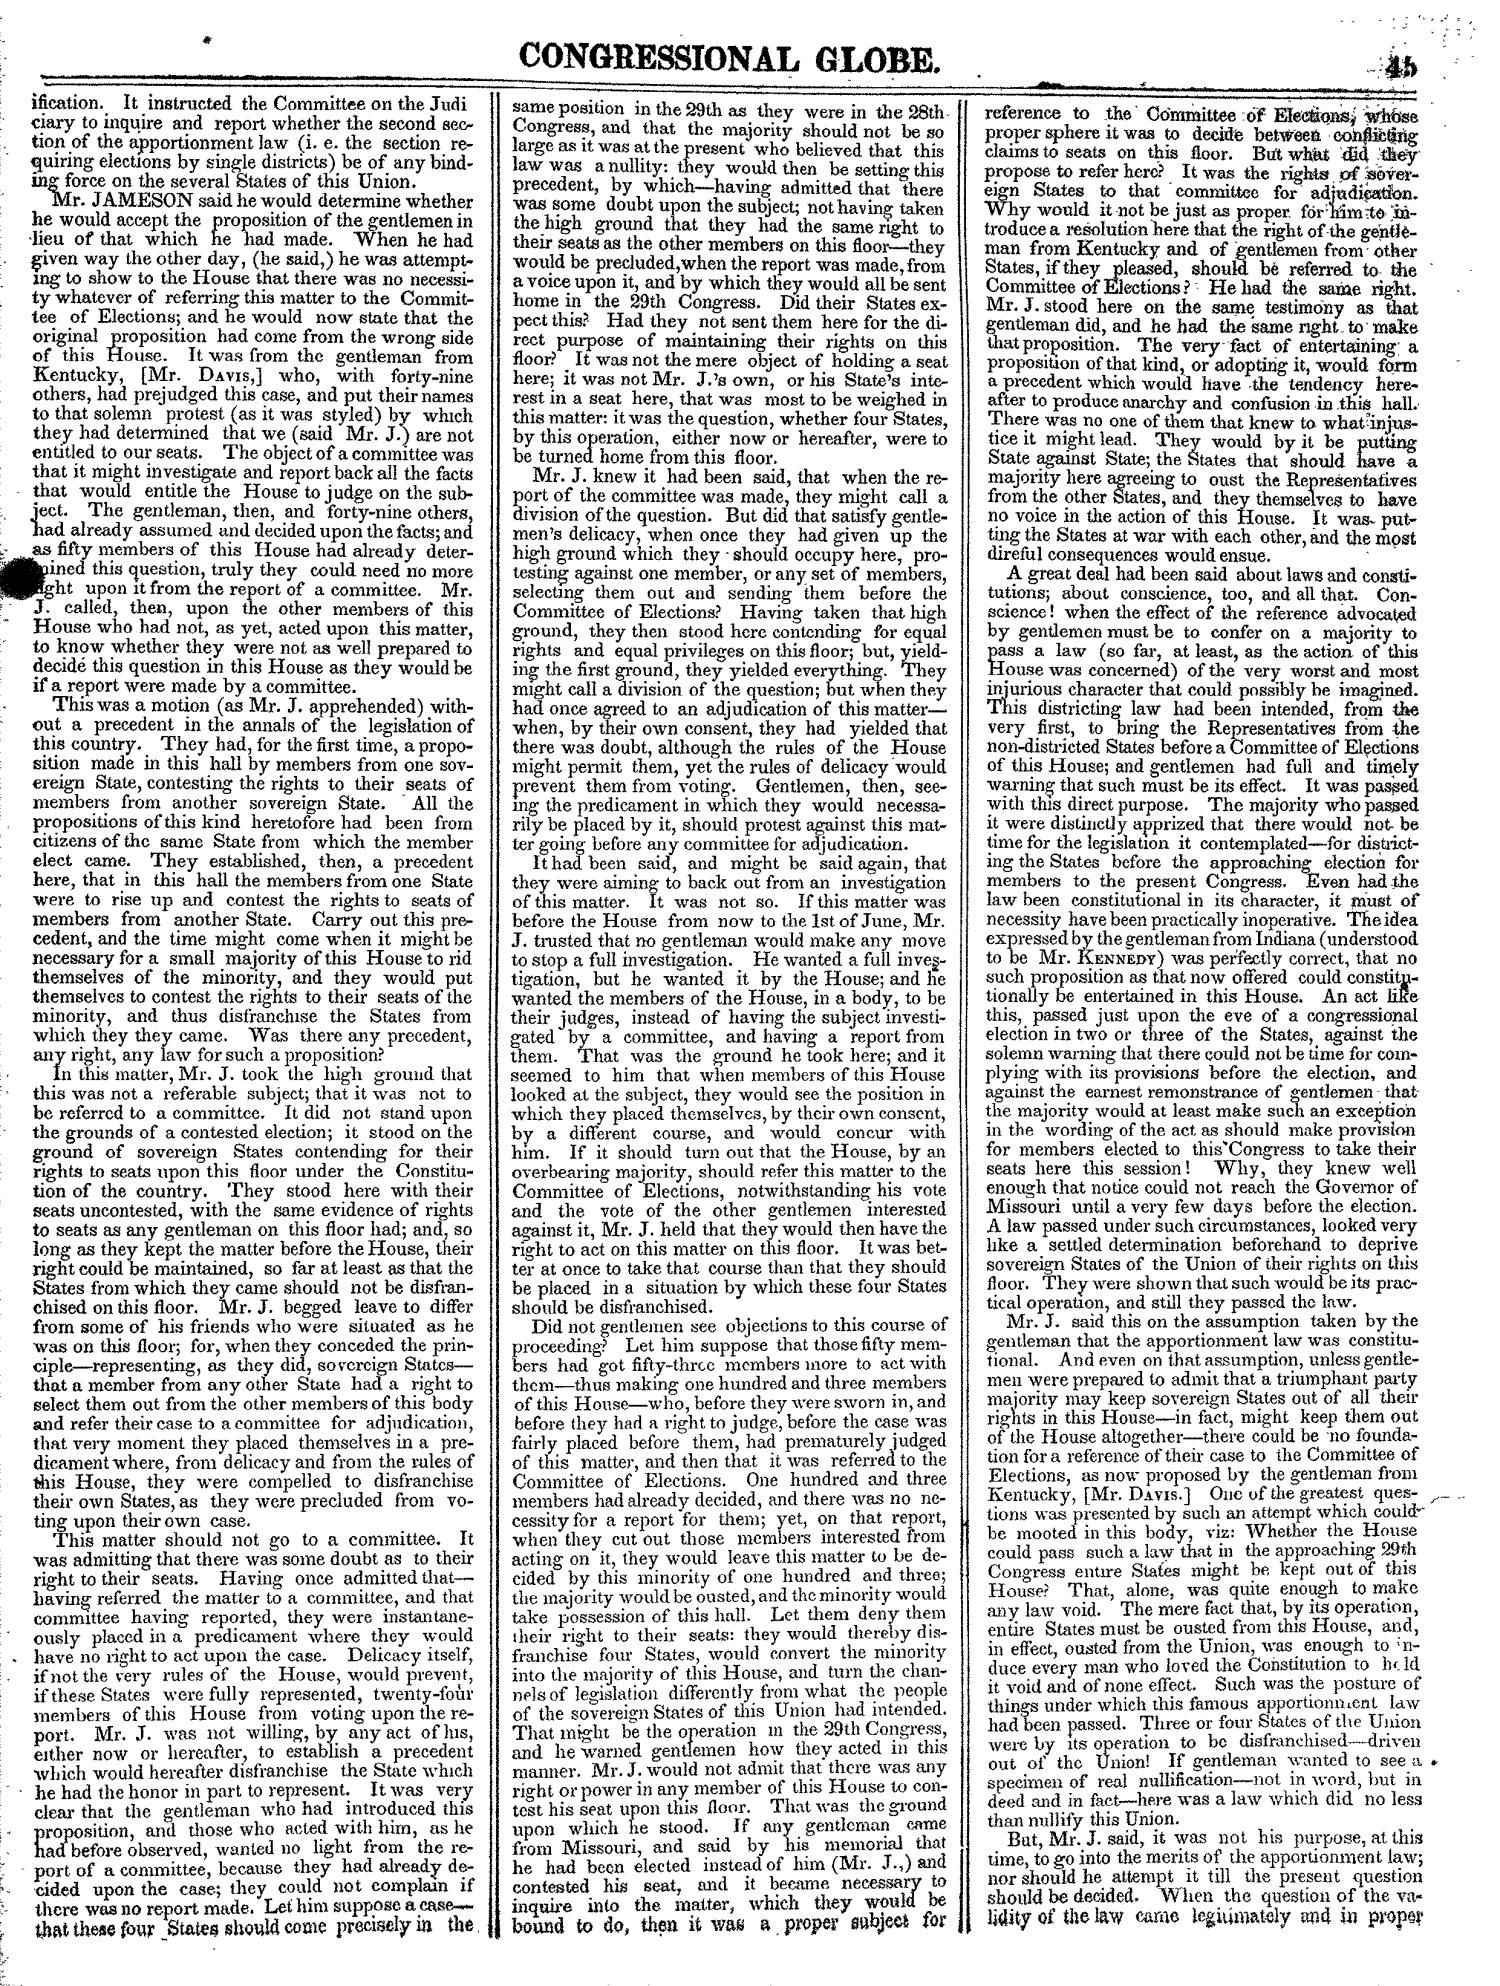 The Congressional Globe, Volume 13, Part 1: Twenty-Eighth Congress, First Session                                                                                                      45